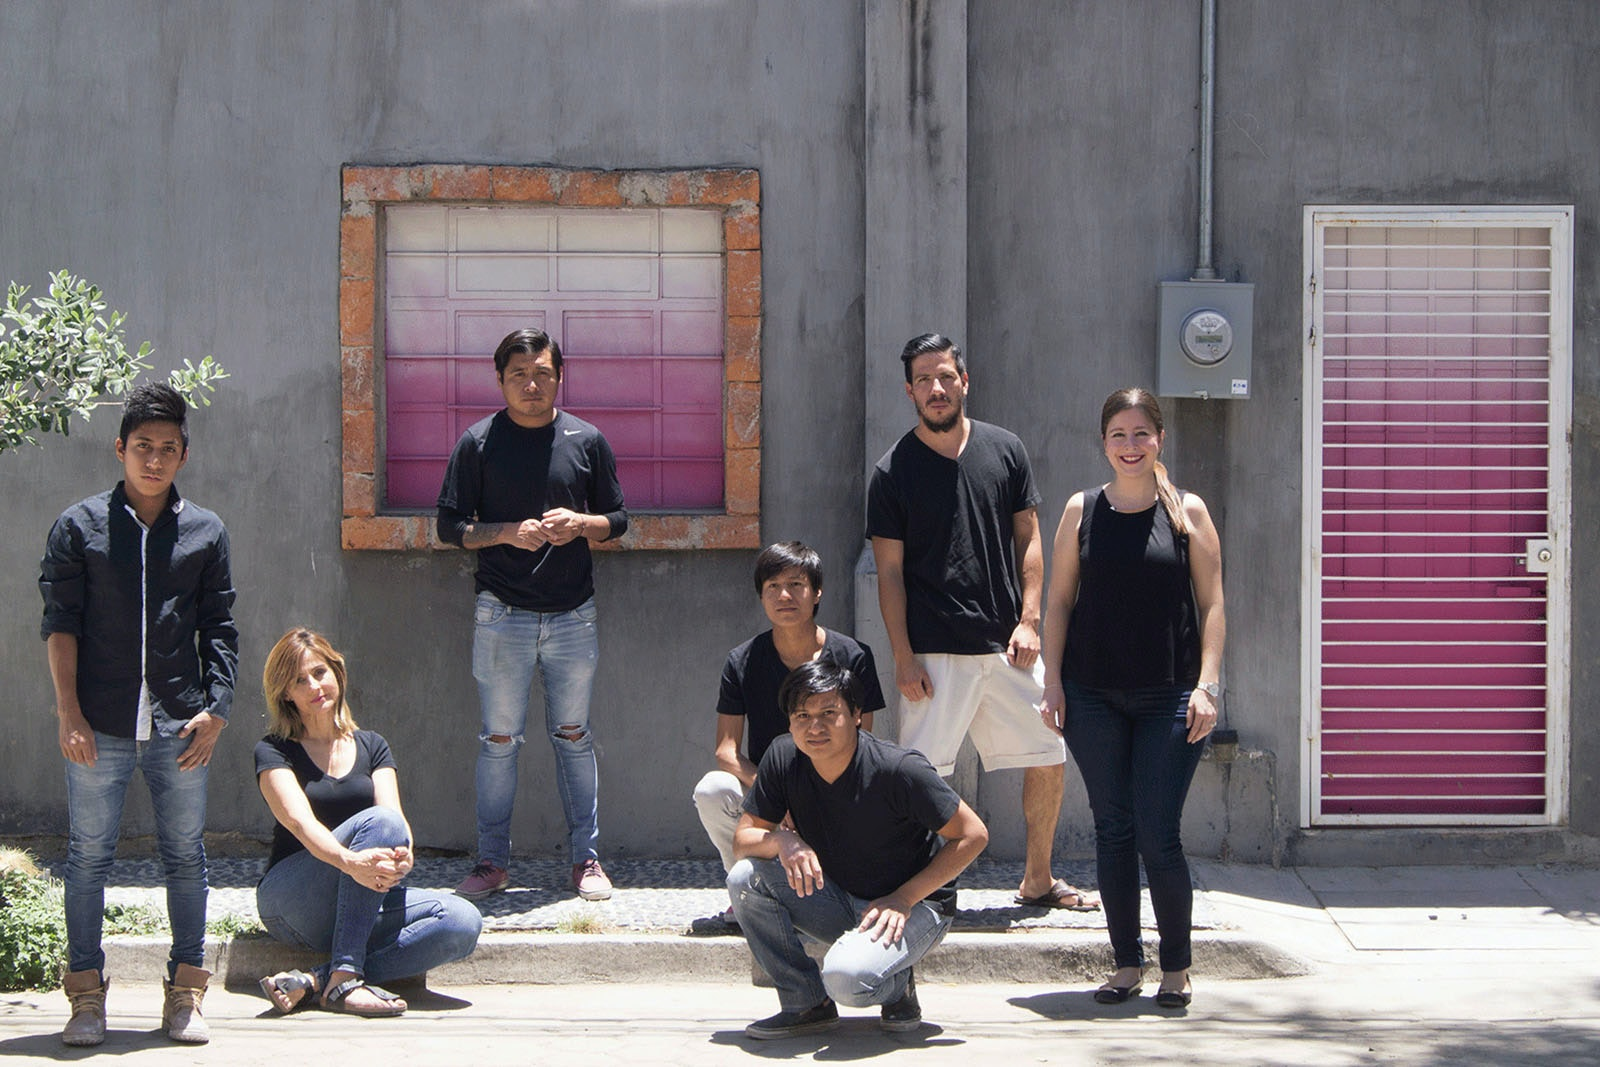 The team of young creatives at Dolce Utopia